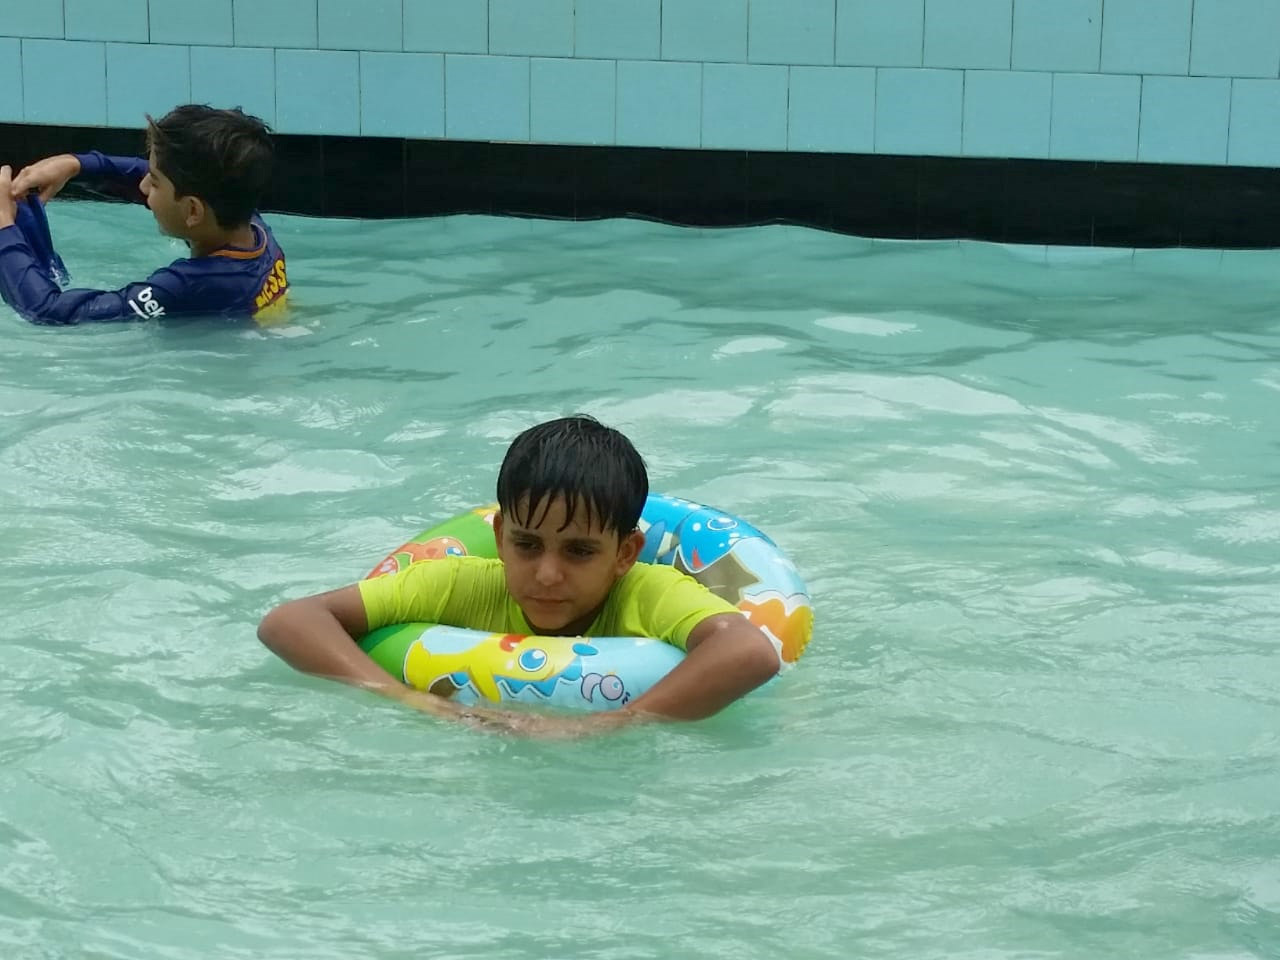 The kid is enjoying inside the swimming pool